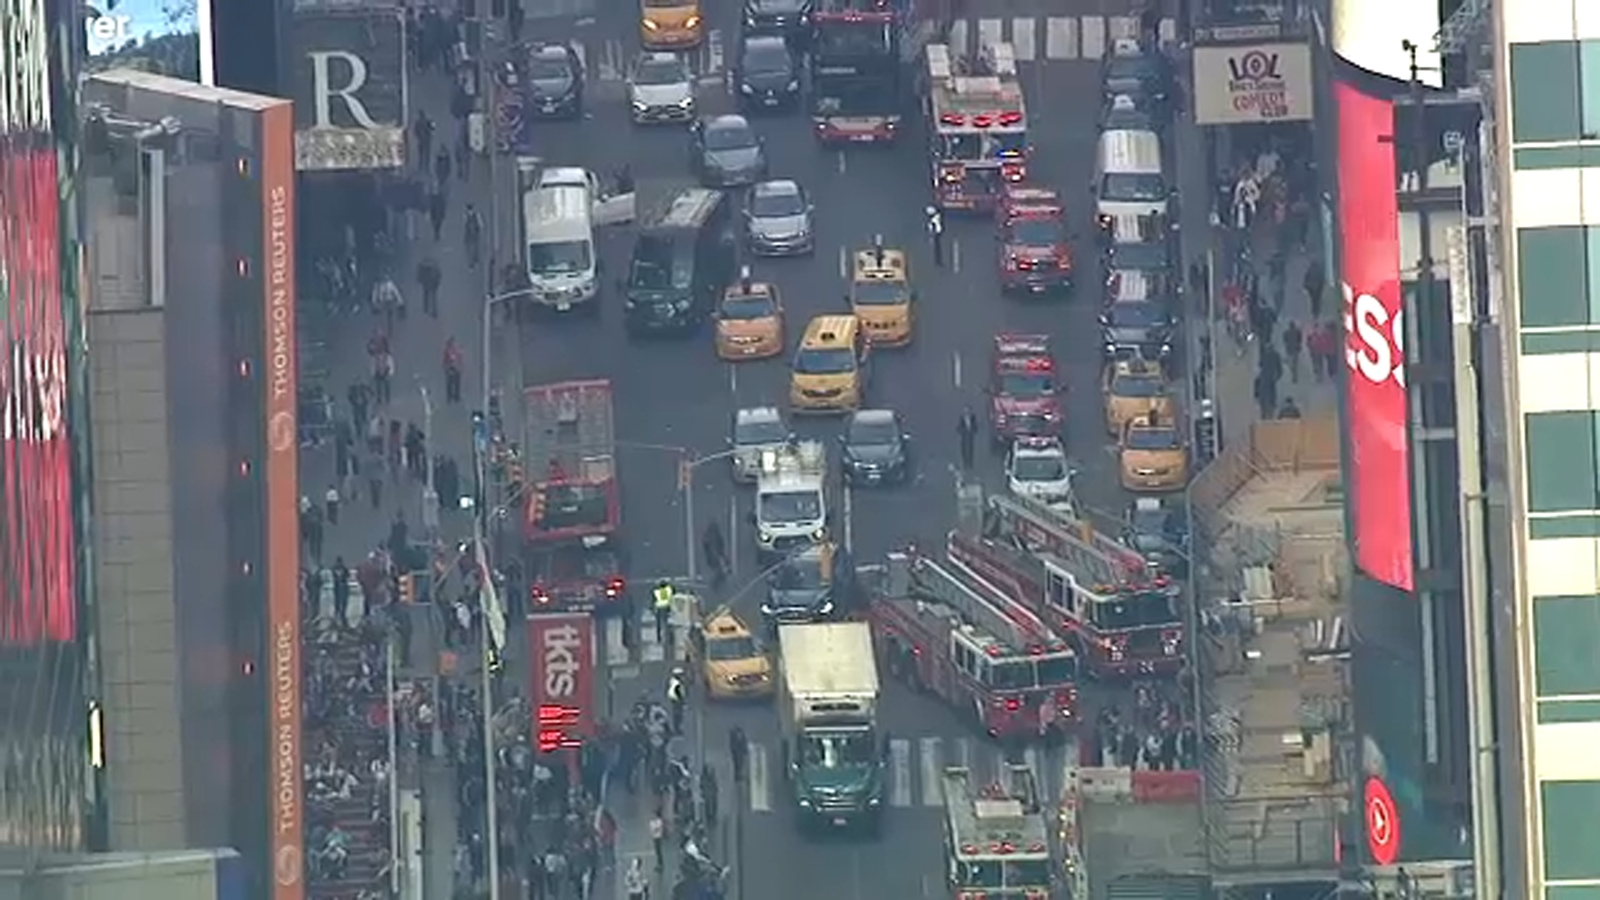 Injuries reported in Midtown Manhattan manhole explosion